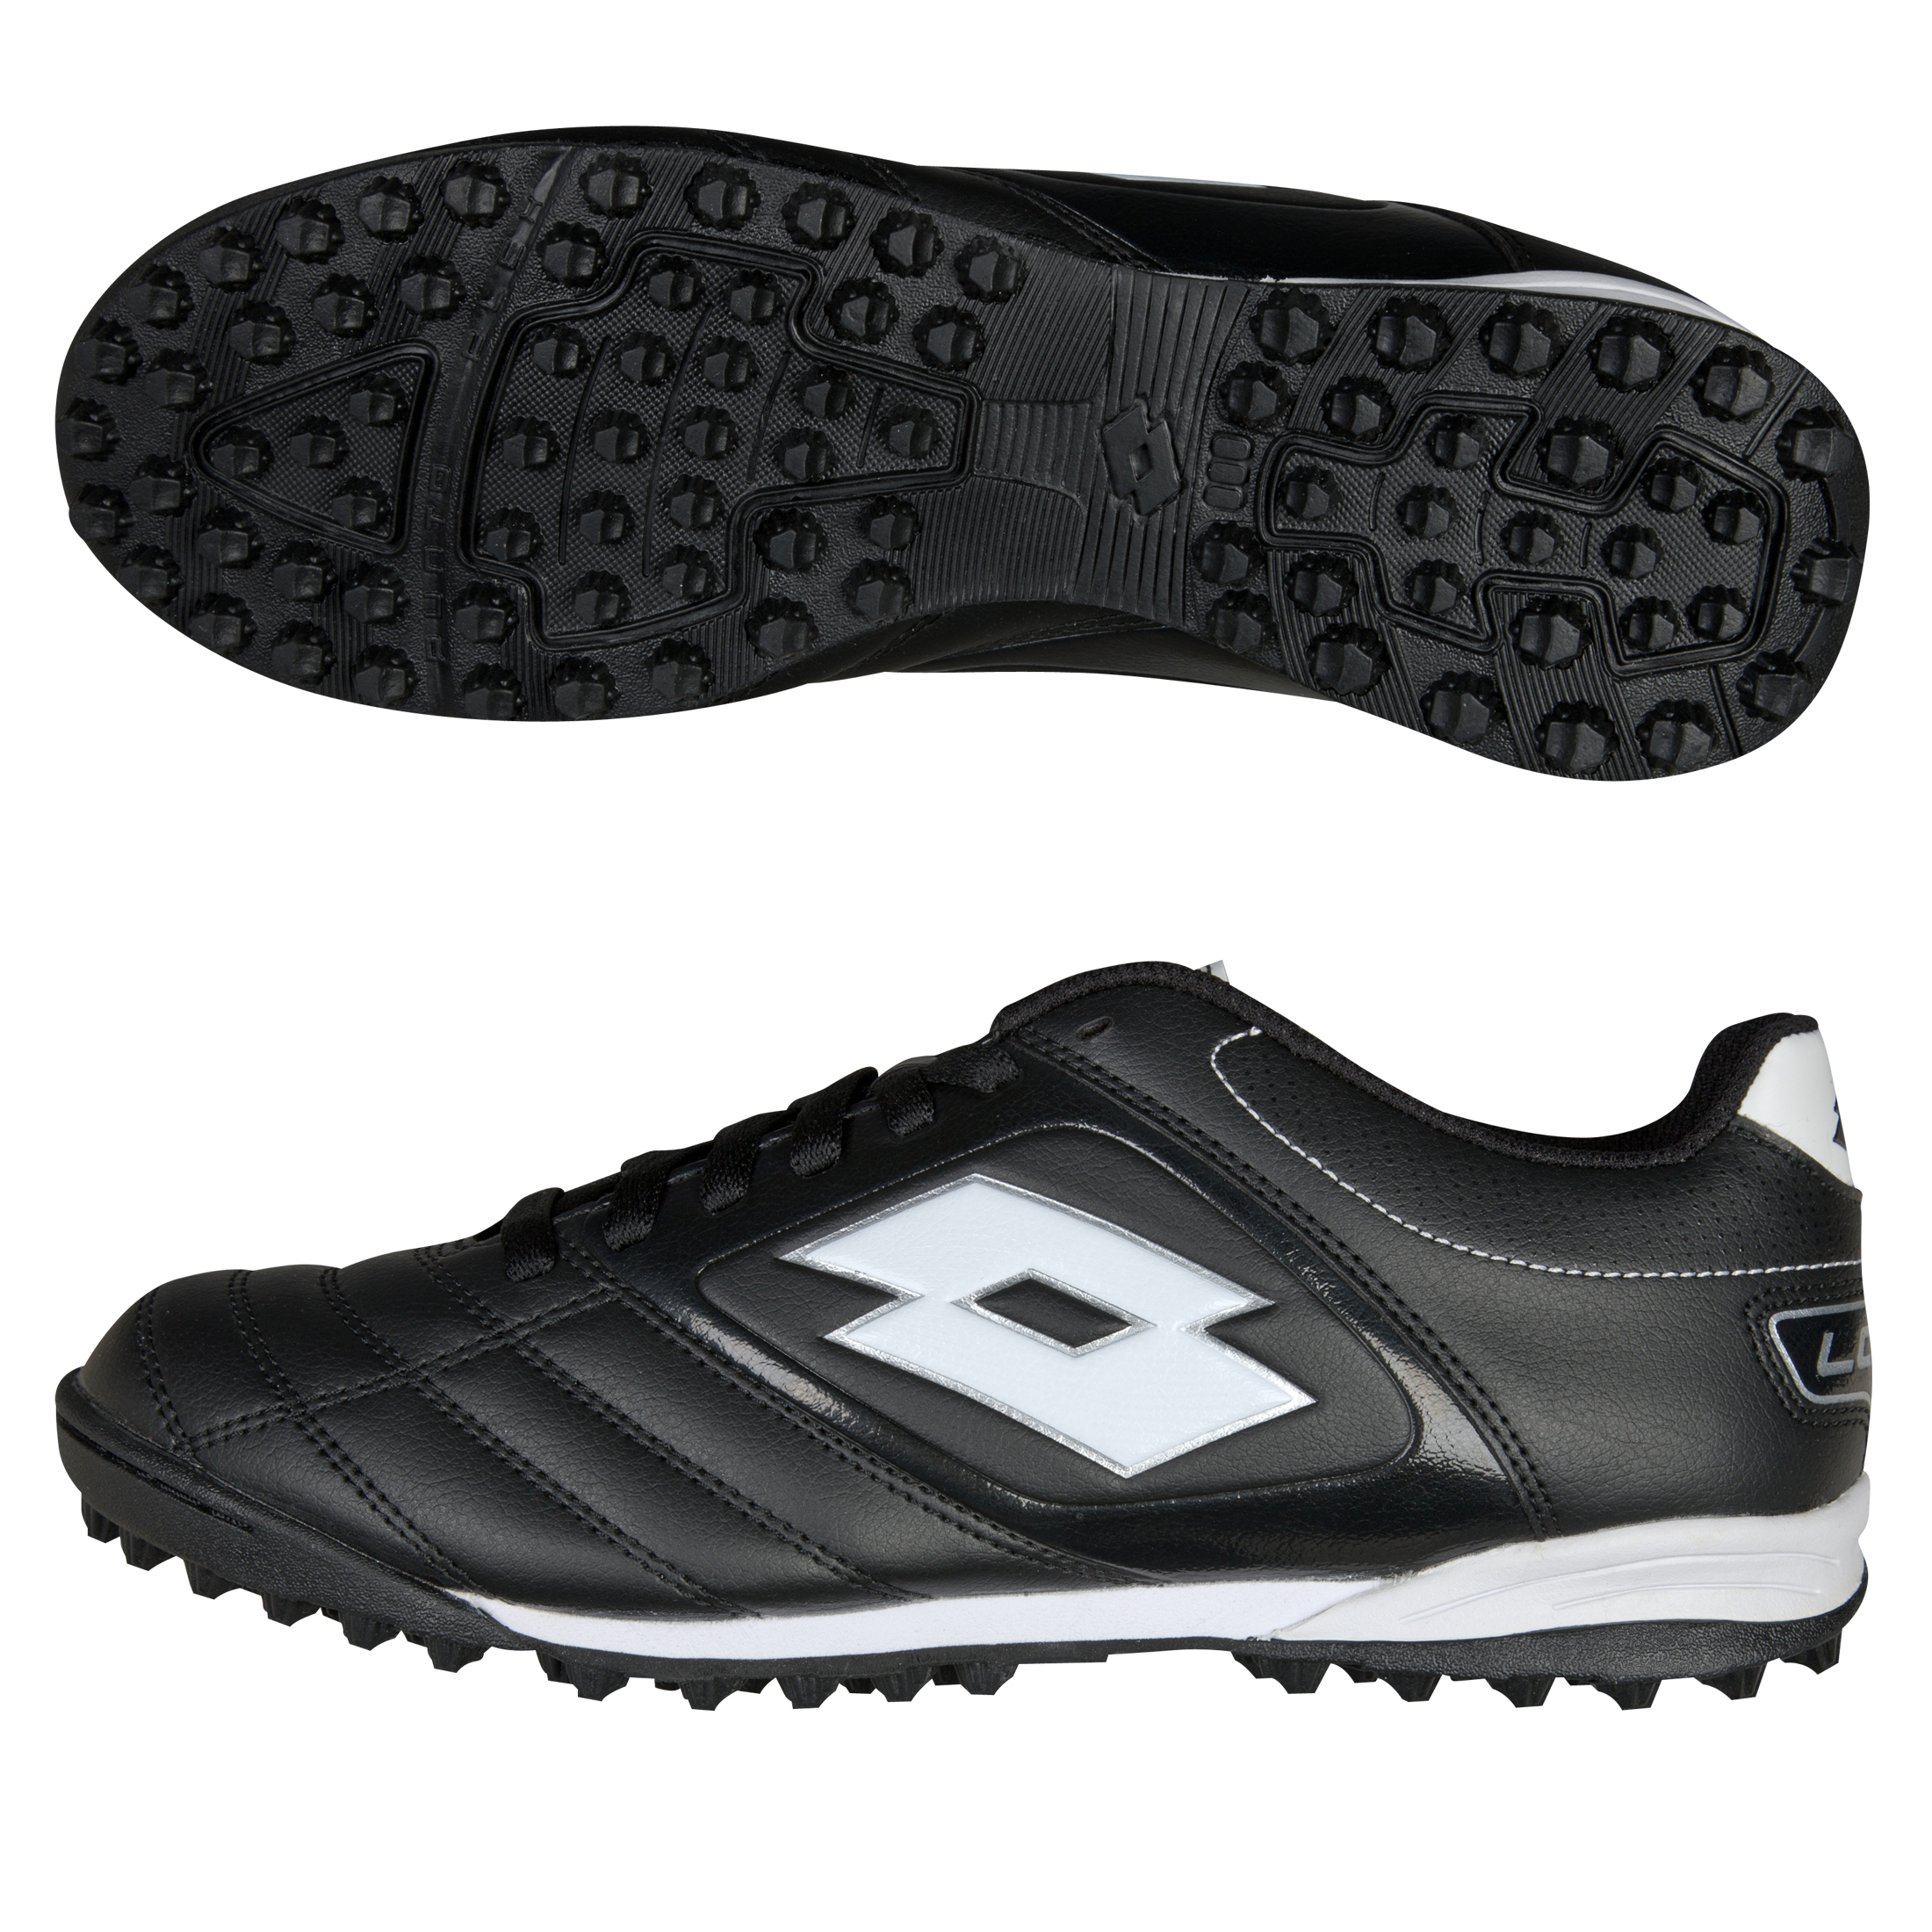 Lotto Stadio Potenza 500 Astro Turf Black/White